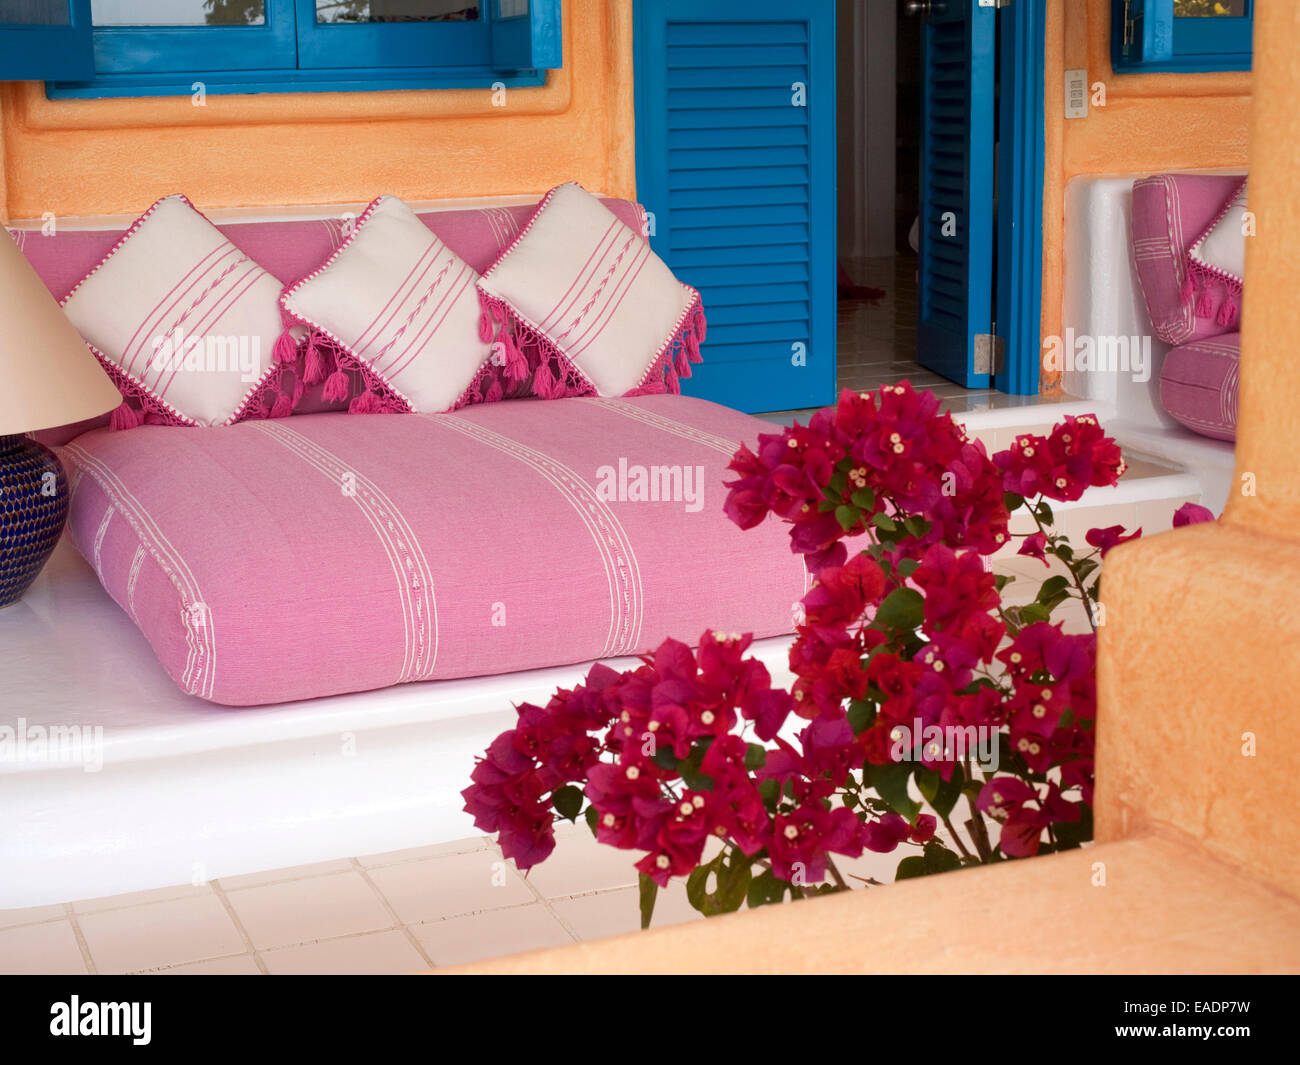 Latin American style decorative seating in outdoor space - Stock Image